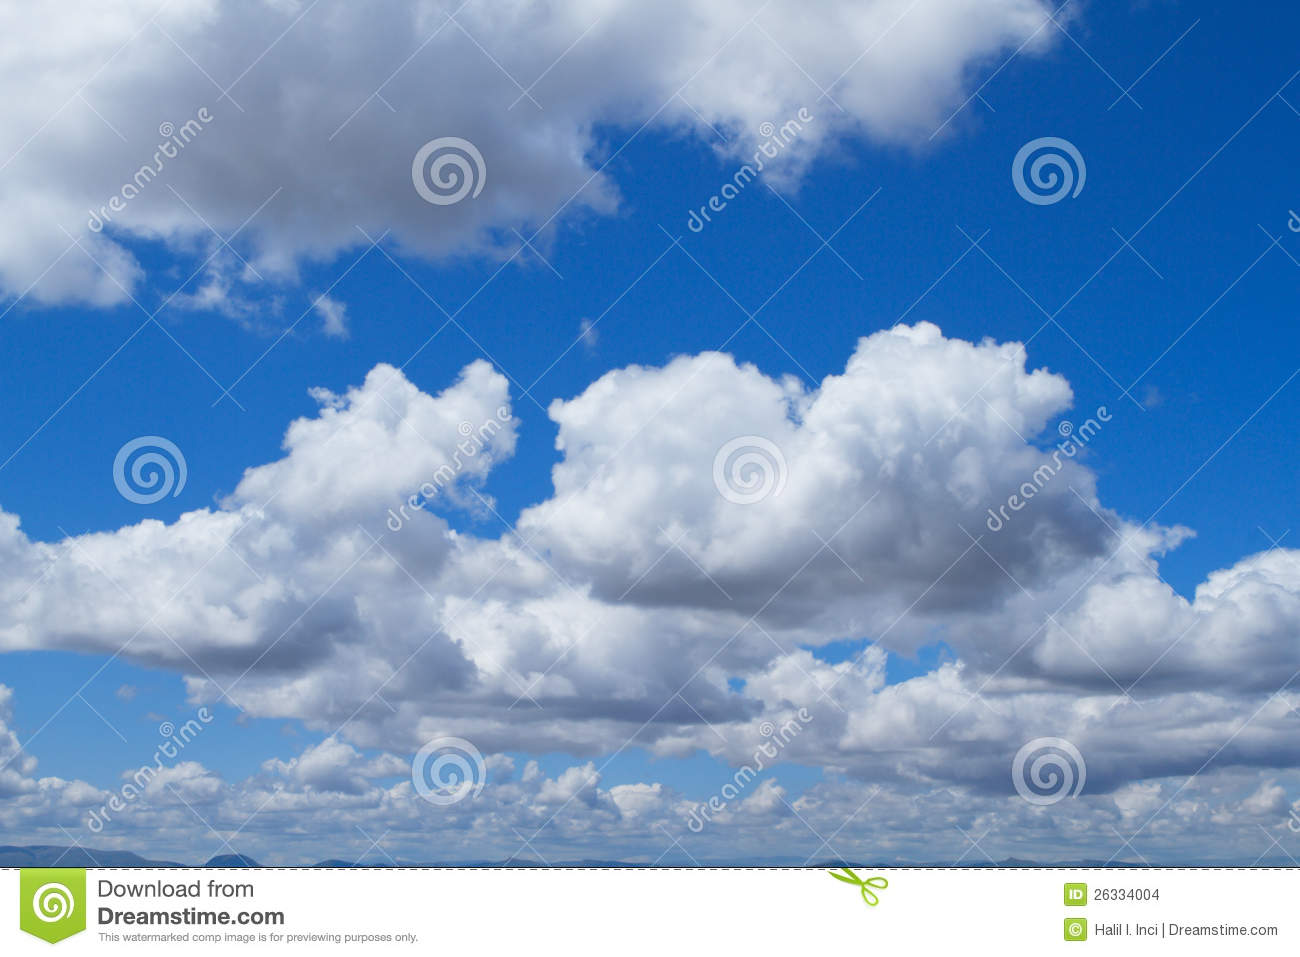 Download Rainy Clouds Over Mountains Stock Photo - Image of abstract, clouds: 26334004